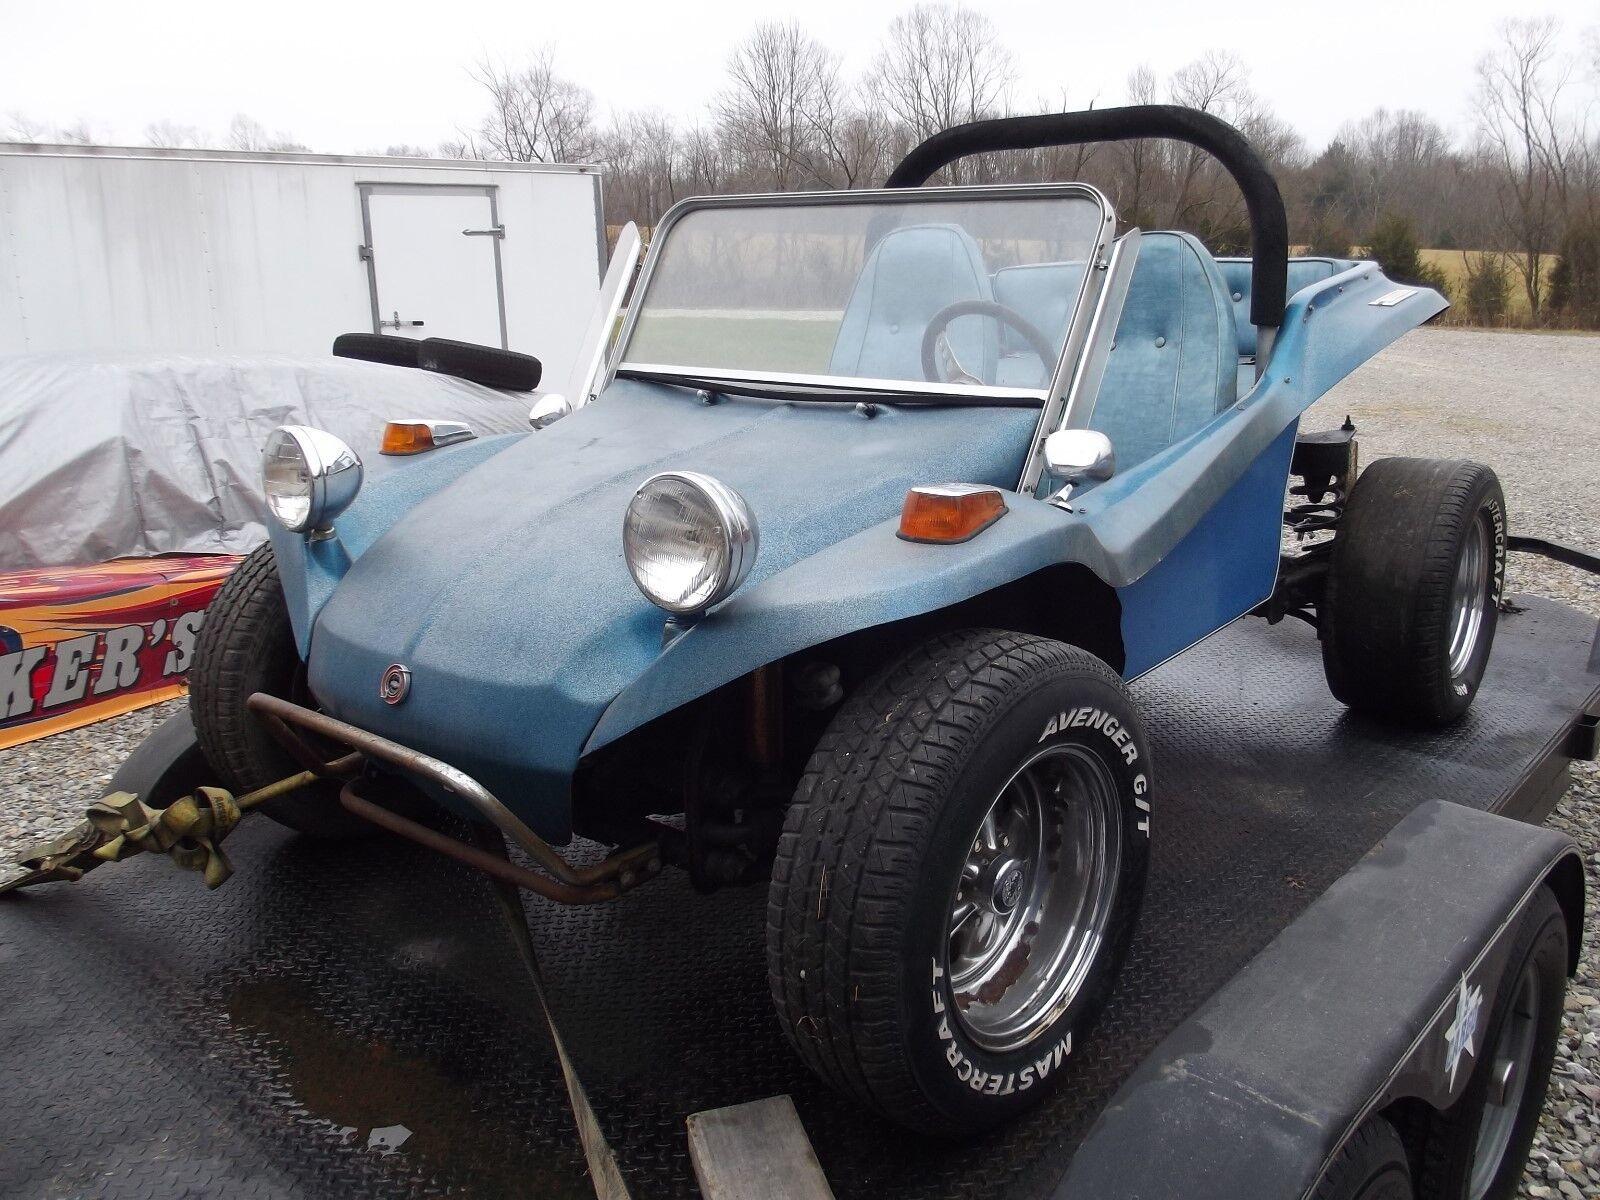 Vintage 1960's Dune Buggy Sears Rascal Corvair Engine Terra Buggy Project Car